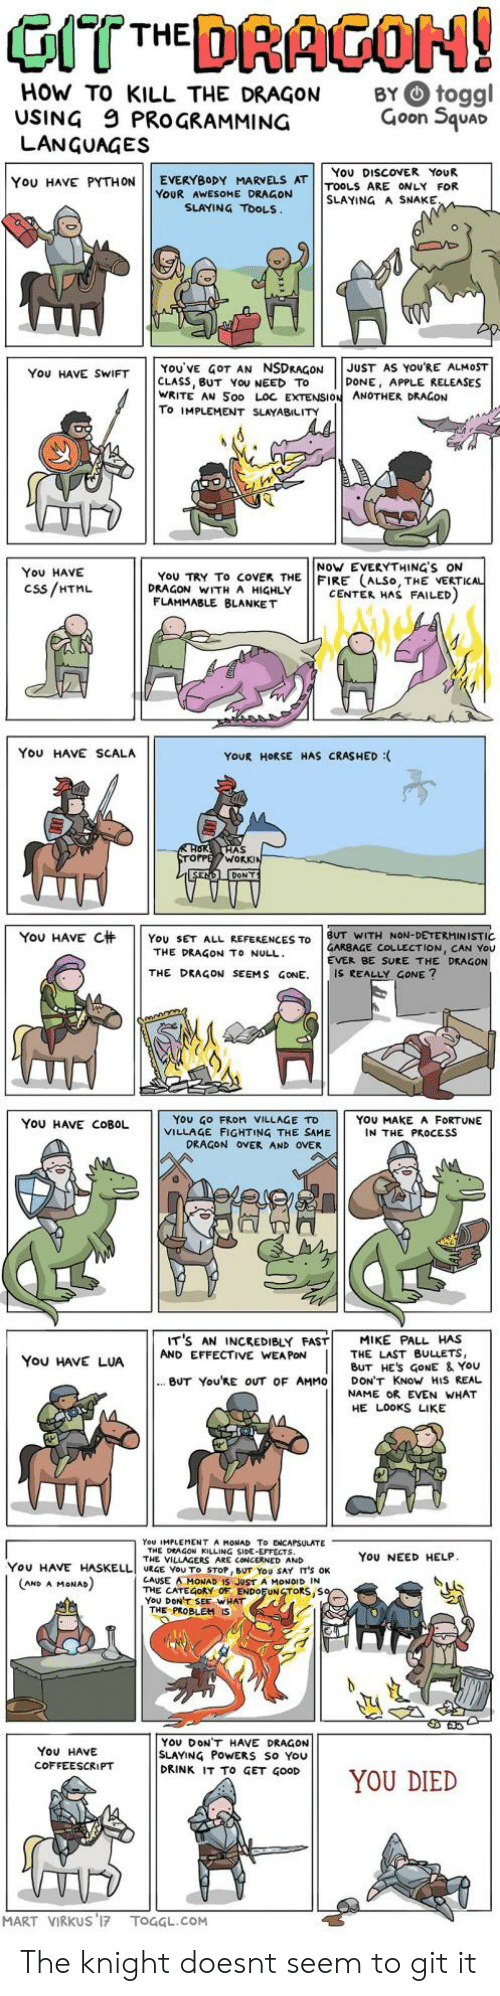 Hes Gone: HOW TO KILL THE DRAGON  USING 9 PROGRAMMING  LANGUAGES  BY O toggl  Goon Squar  You DISCOVER YoUR  YOU HAVE PYTHON | | EVERYBODY MARVELS AT | |TOOLS ARE ONLY FOR  YOUR AWESOME DRAGON  SLAYING A SNAKE  SLAYING TOOLS  YOU'VE GOT AN NSDRAGONJUST AS YOURE ALMOST  CLASS, BUT YoU NEED TO  WRITE AN Soo LOC EXTENSION ANOTHER DRAGON  To IMPLEMENT SLAYABILITY  You HAVE SWIFT  DONE, APPLE RELEASES  NoW EVERYTHING'S ON  You HAVE  Css/HTML  YoU TRY To coVEK THE FIRE (ALSo, THE VERTI  DRAGON WITH A HIGHLY  CENTER HAS FAILED  FLAMMABLE BLANKET  You HAVE SCALA  YOUR HORSE HAS CRASHED :  AS  WORK  YOU HAVE C杄 | | YOU SET ALL REFERENCES TO | BUT WITH NON-DETERMINISTIC  GARBAGE COLLECTION, CAN You  EVER BE SURE THE DRAGON  THE DRAGON TO NULL  THE DRAGON SEEMS GONE. IS REALLY GONE?  YoU GO FRoM VILLAGE TD  VILLAGE FIGHTING THE SAME  YOU HAVE COBOL  YOU MAKE A FORTUNE  IN THE PROCESS  DRAGON OVER AND OVER  IT'S AN INCREDIBLY FAST! MIKE PALL HAS  You HAVE LUAAND EFFECTIVE WANE ES  THE LAST BULLETS,  BUT HES GoNE & YoU  BUT You'RE OUT OF AMMO DON'T KNoW HIS REAL  NAME OR EVEN WHAT  HE LOOKS LIKE  You IMPLEMENT A MONAD To ENCAPSULATE  THE DEAGON KILLING SIDE-EFFECTS  THE VILLAGERS ARE CONCERNED AND  YoU NEED HELP  YOU HAVE HASELLI URGE YOU To STOP, BUT YOU SAY IT'S OK  CAUSE AMONAD IS JUST A MONOID IN  THE CATEGORY OF ENDOFUNSTORS,S  YoU DONT SEE WHAT  AND A MoNAD  THE PROBLEM  YOU DONT HAVE DRAGON  SLAYING PoWERS So You  DRINK IT To GET GOOD  ON11 YOU DIED  You HAVE  COFFEESCRIPT  MART VIRKUS 17 TOGGL.COM The knight doesnt seem to git it